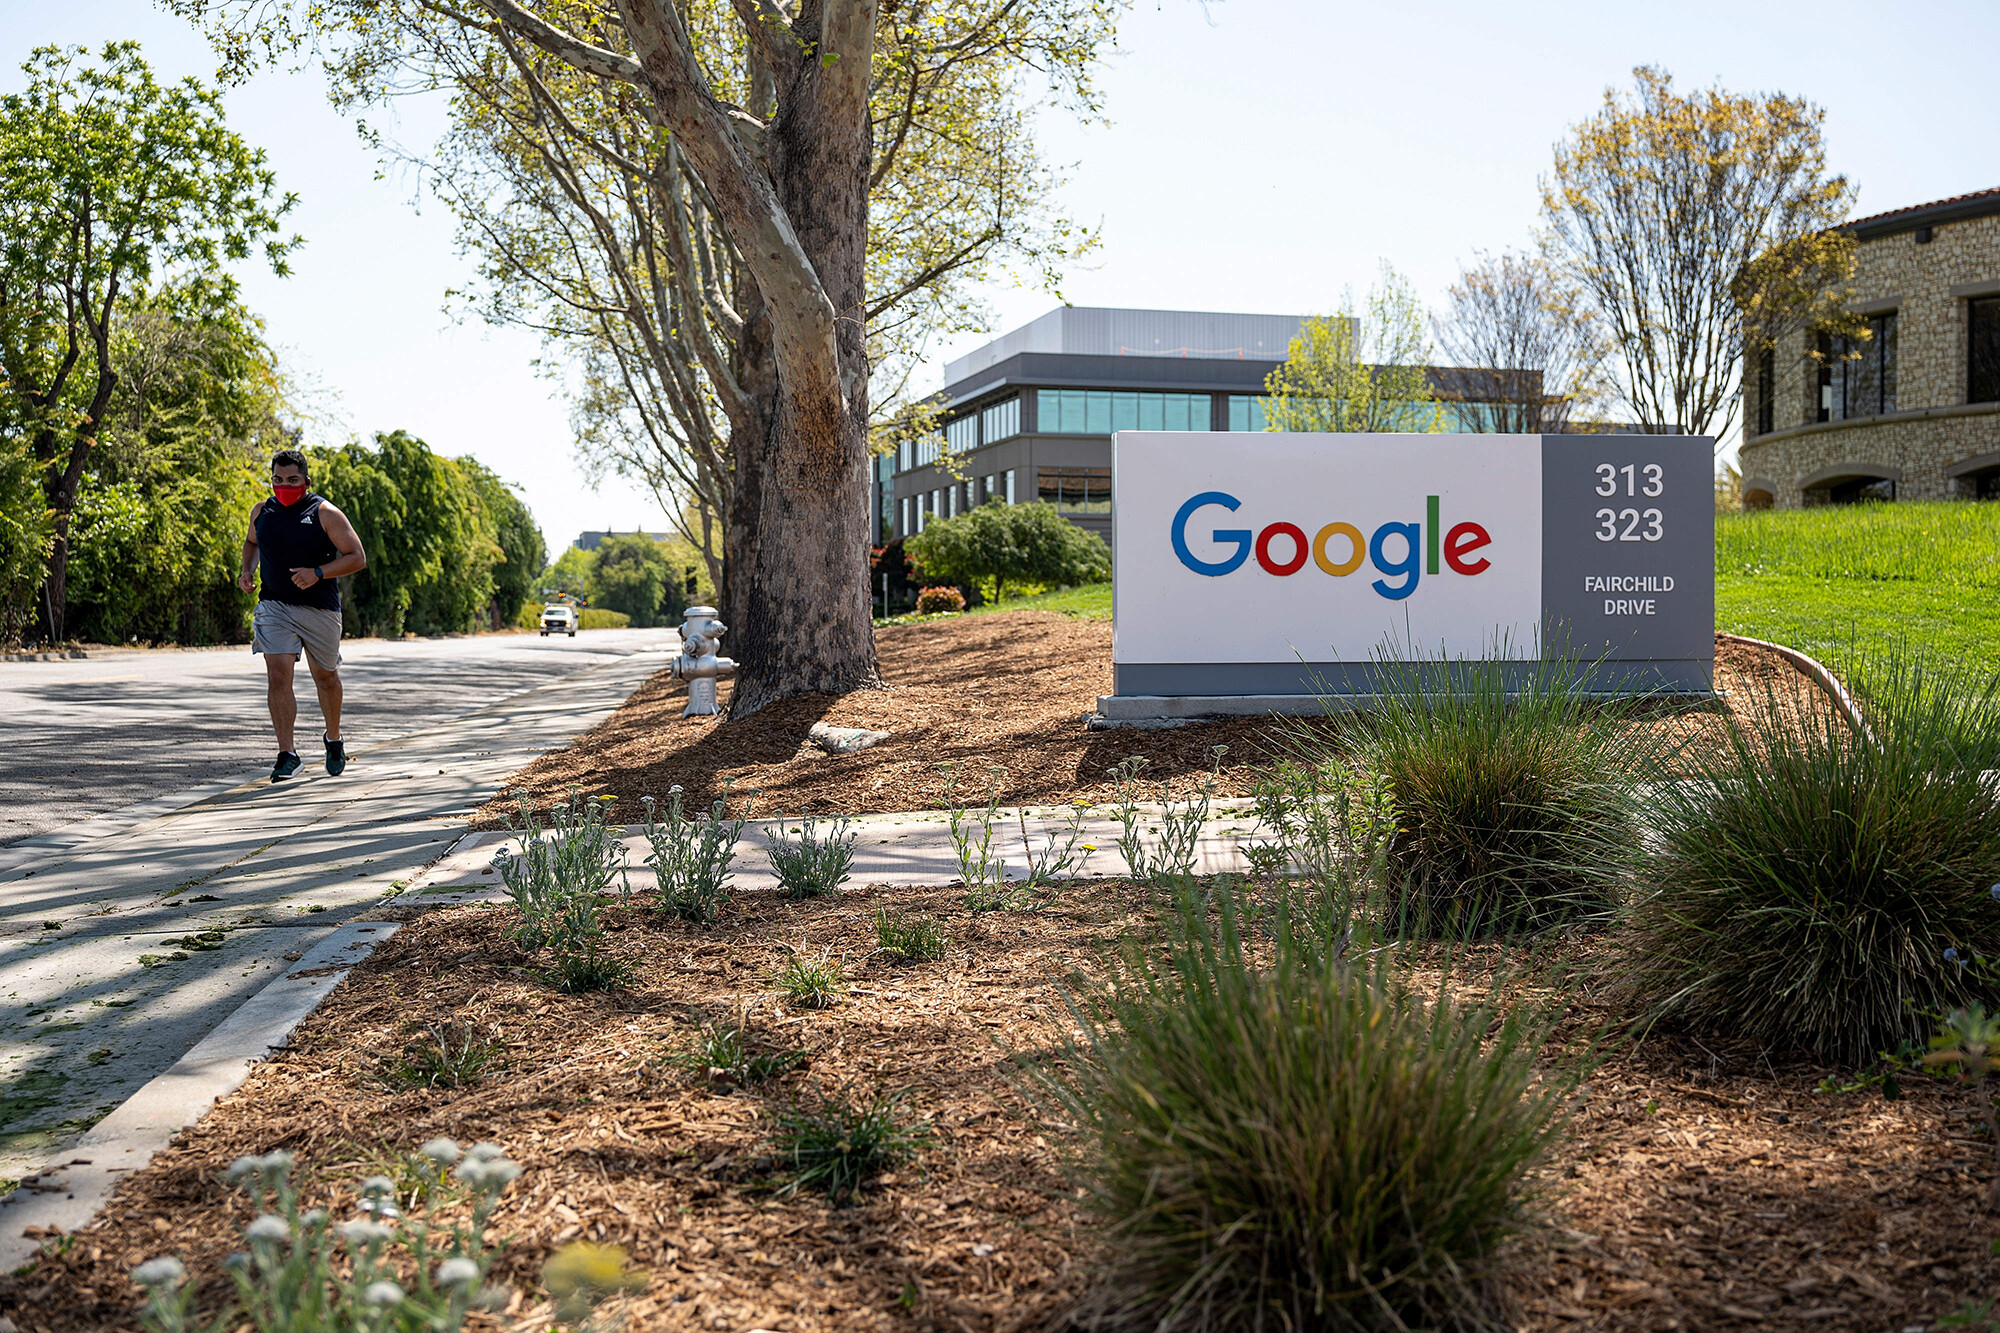 <i>David Paul Morris/Bloomberg/Getty Images</i><br/>Google on July 28 became one of the first major Silicon Valley firms to say it will require employees to be vaccinated when they return to the company's campuses.